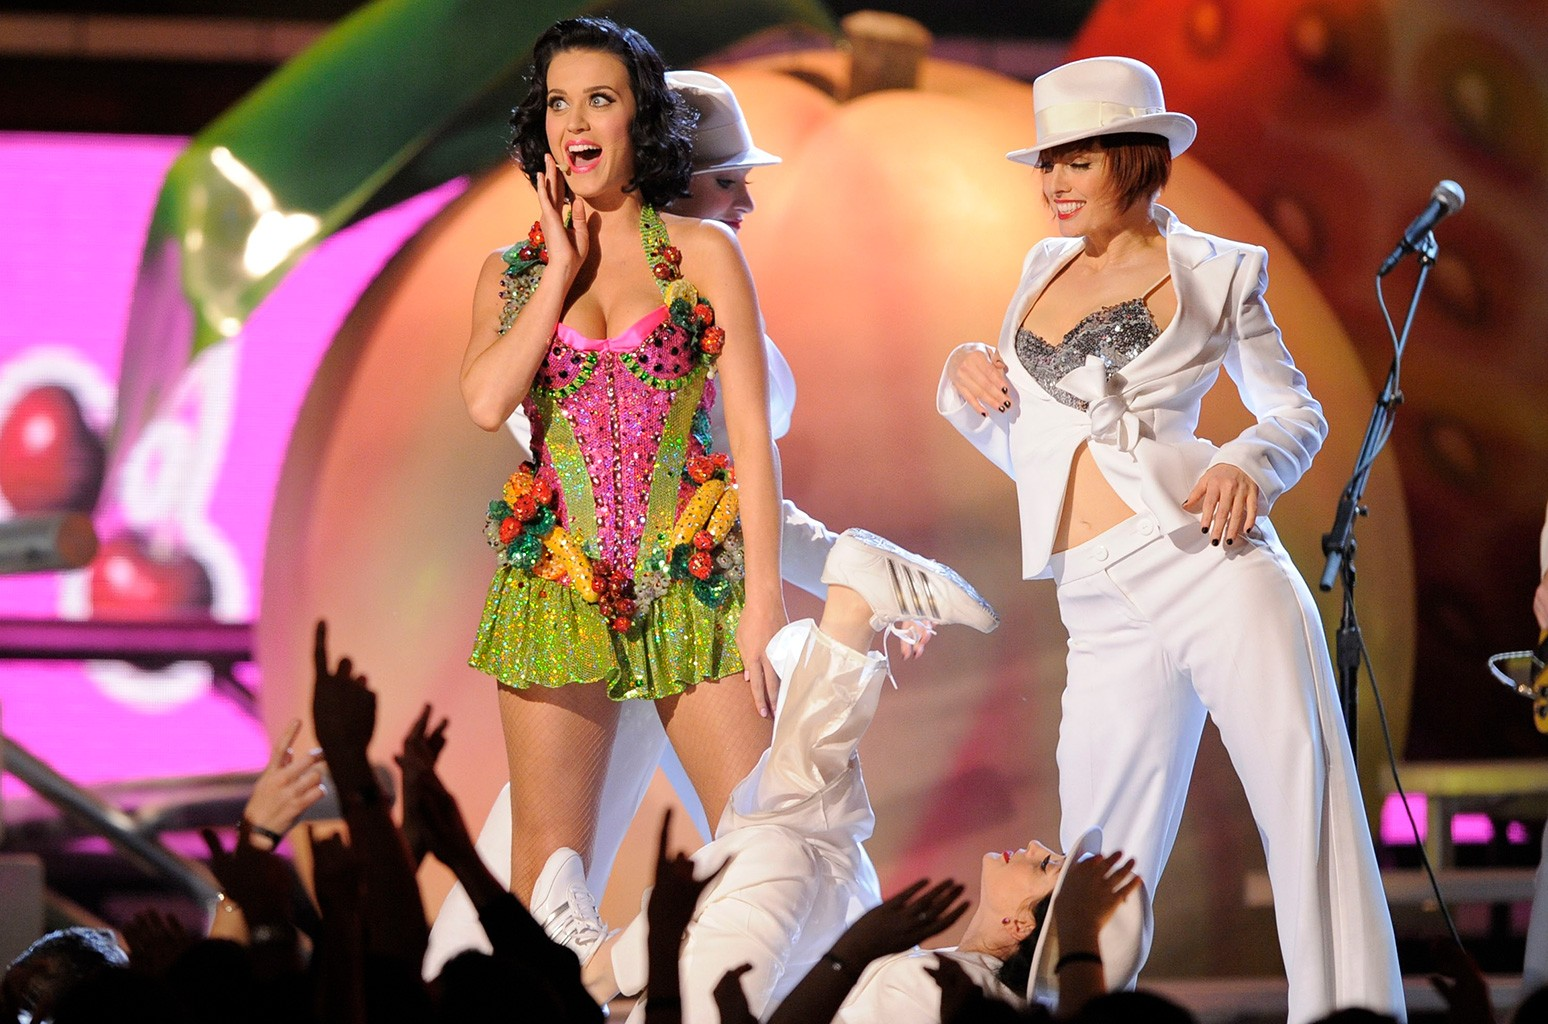 Katy Perry performs at the 51st Annual Grammy Awards on Feb. 8, 2009 in Los Angeles.